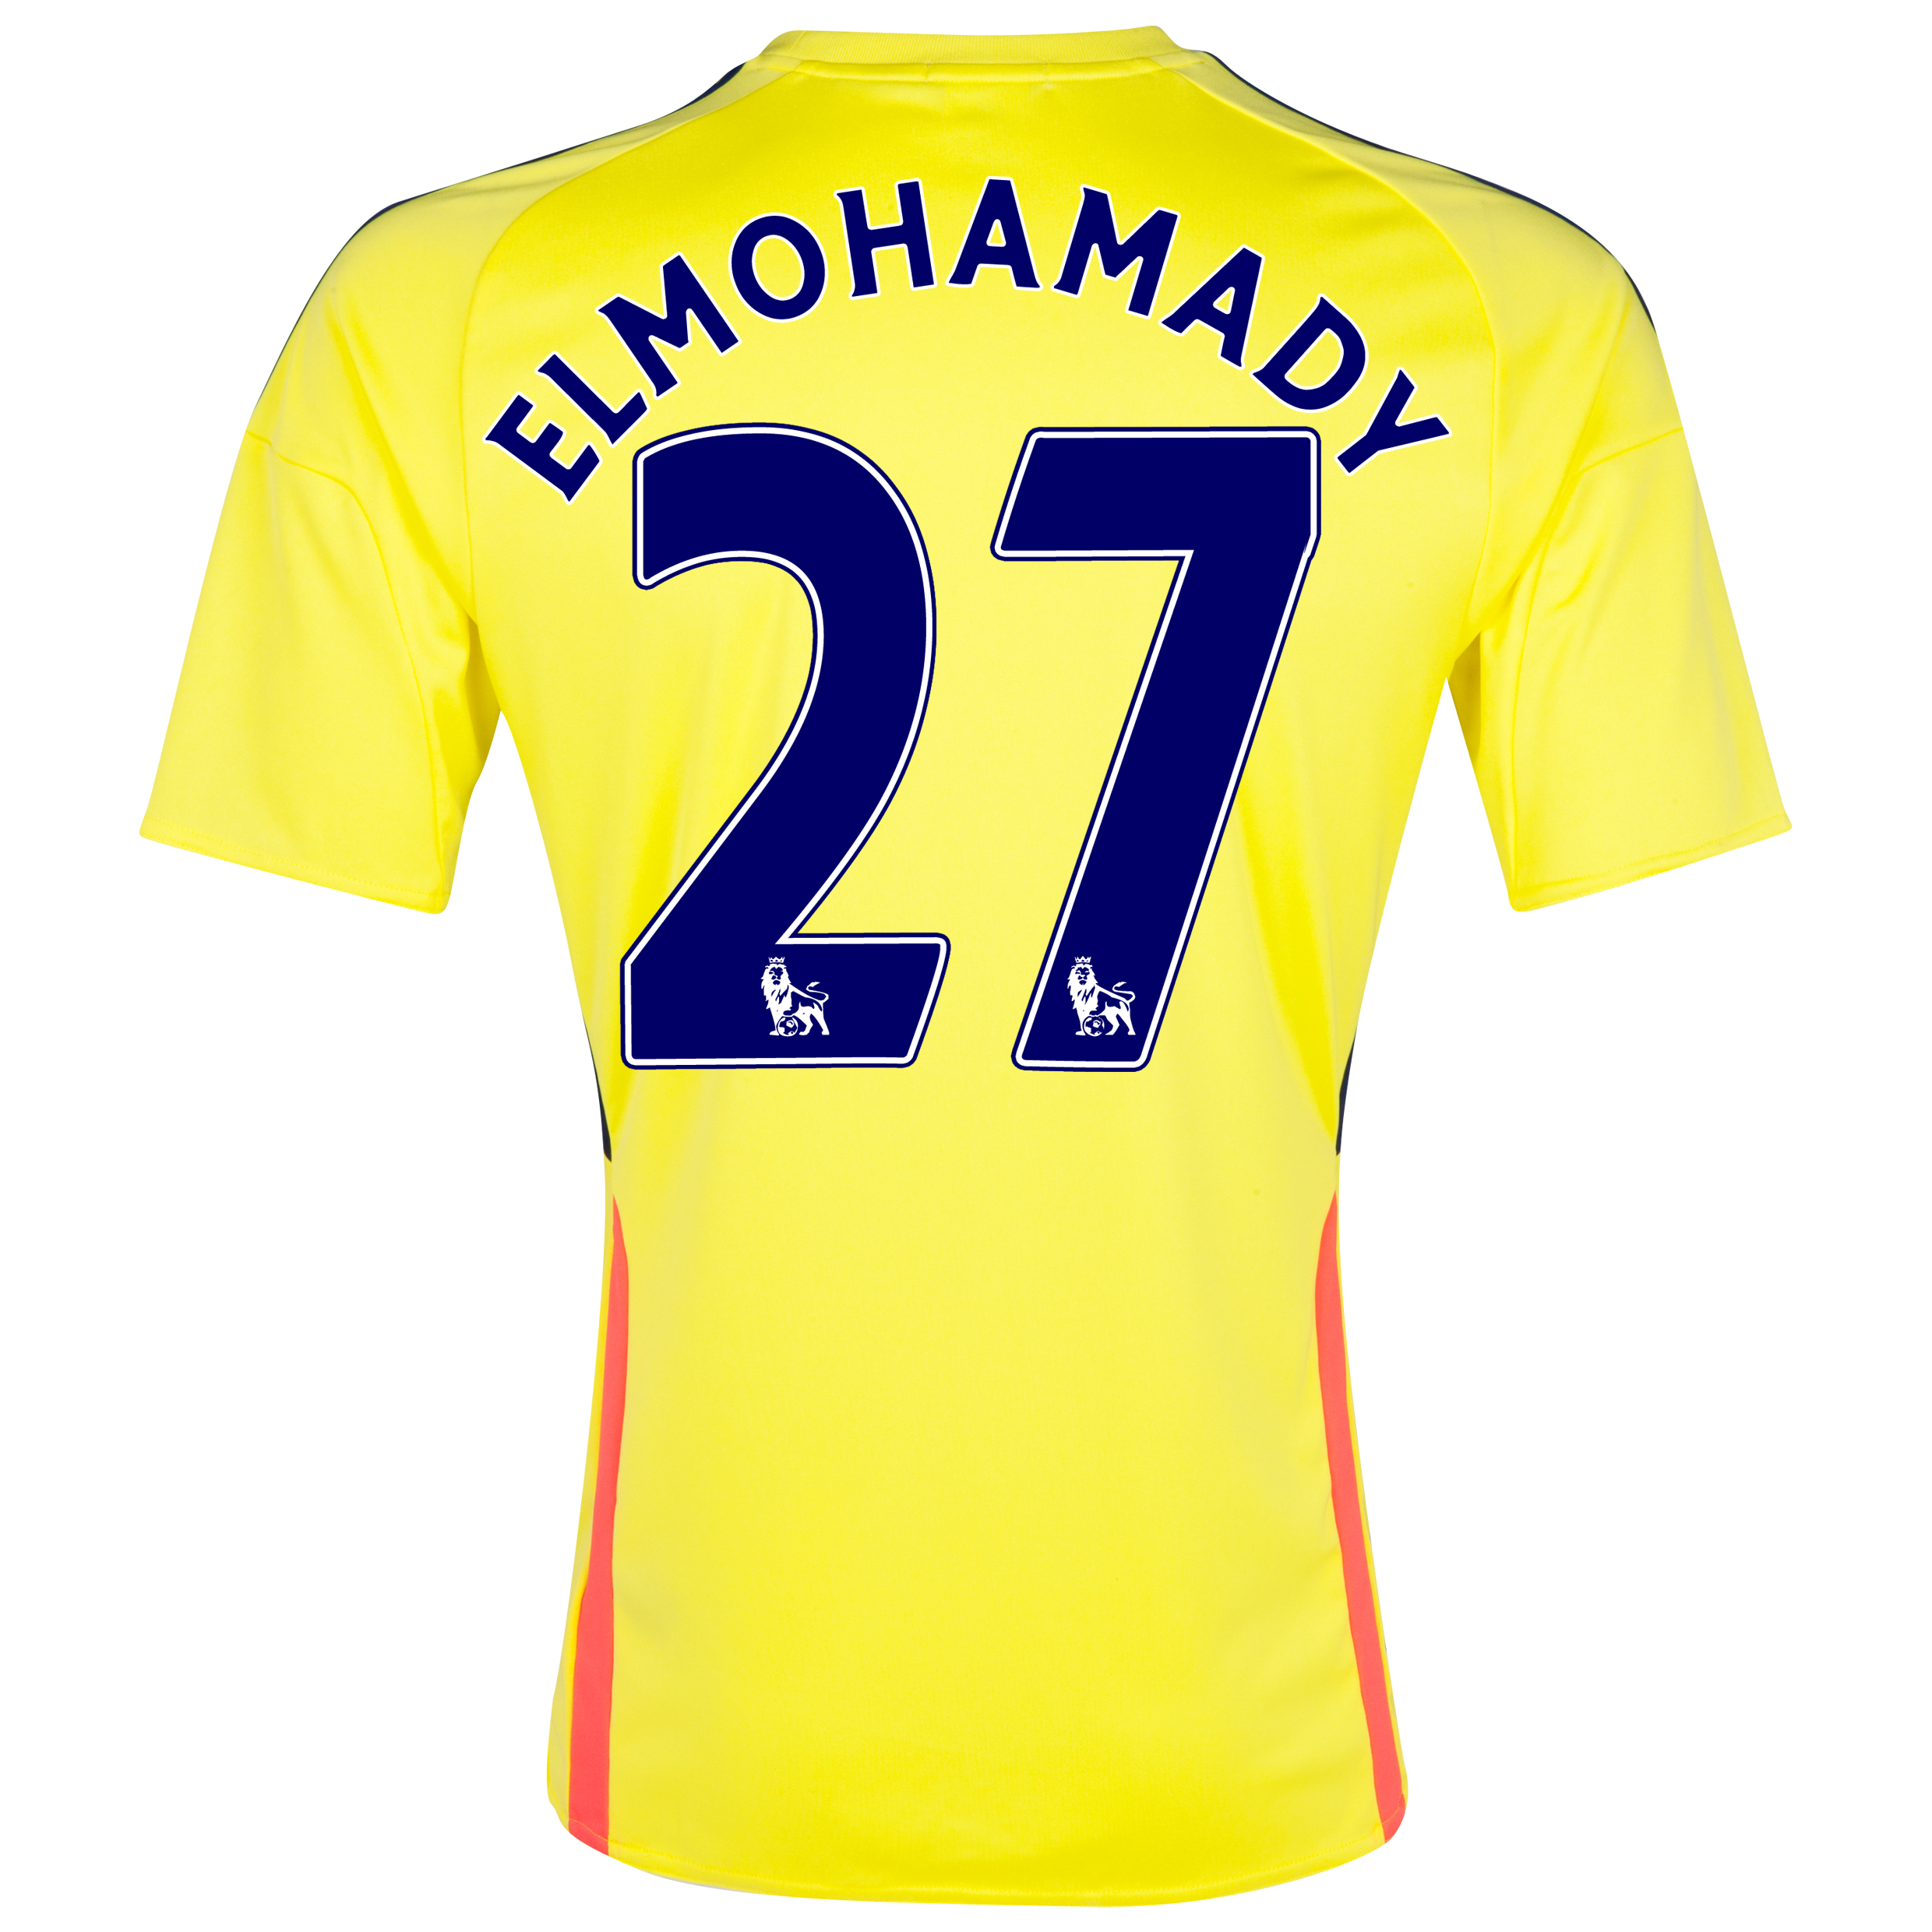 Sunderland Away Shirt 2013/14 - Junior with Elmohamady 27 printing